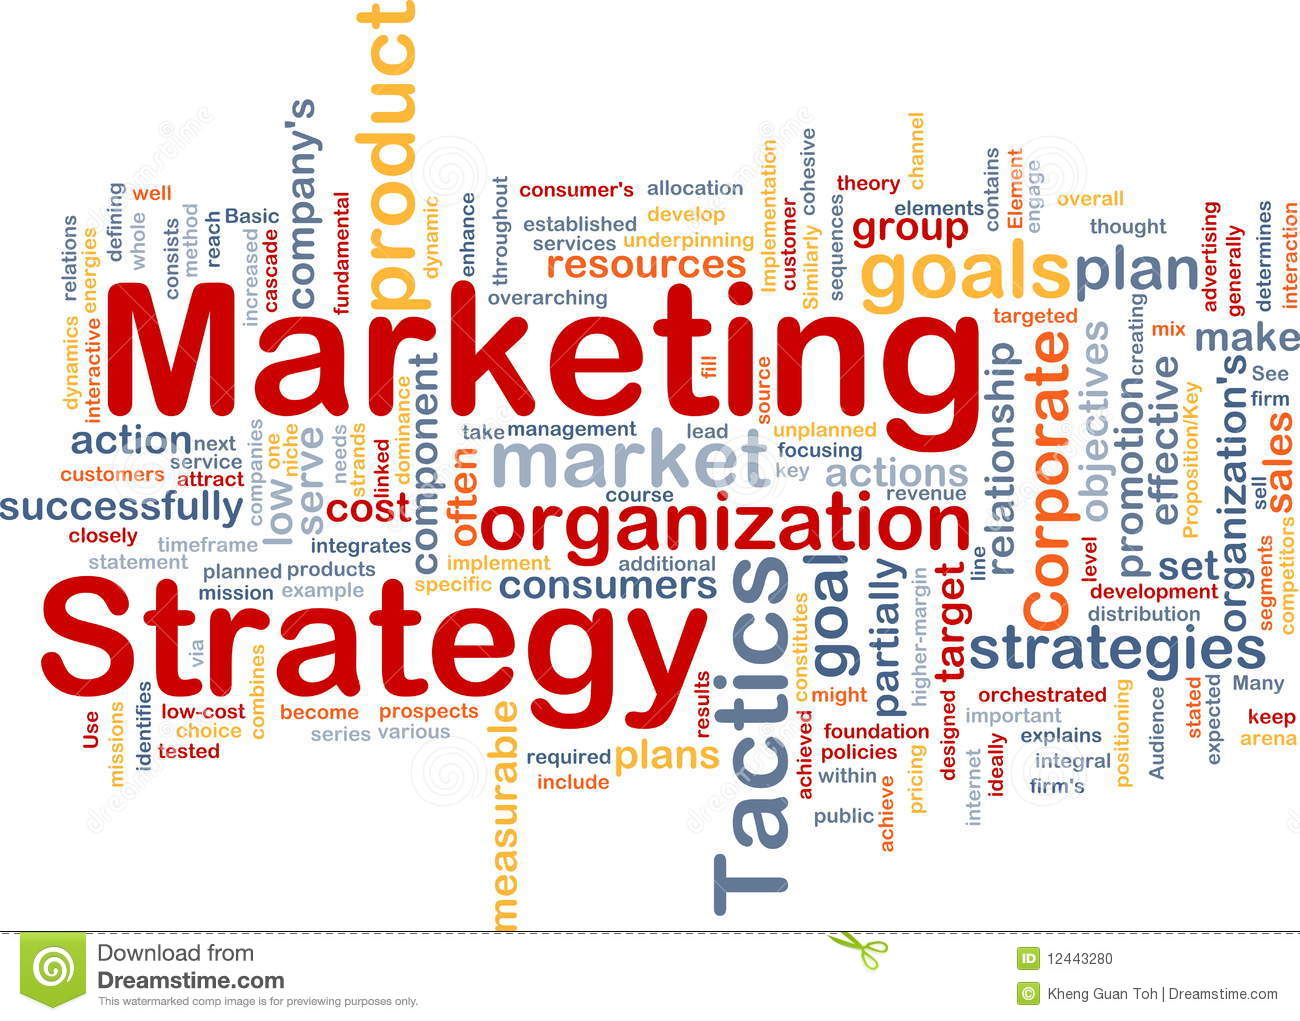 Marketing Strategy  Entrepreneurship Dream Board